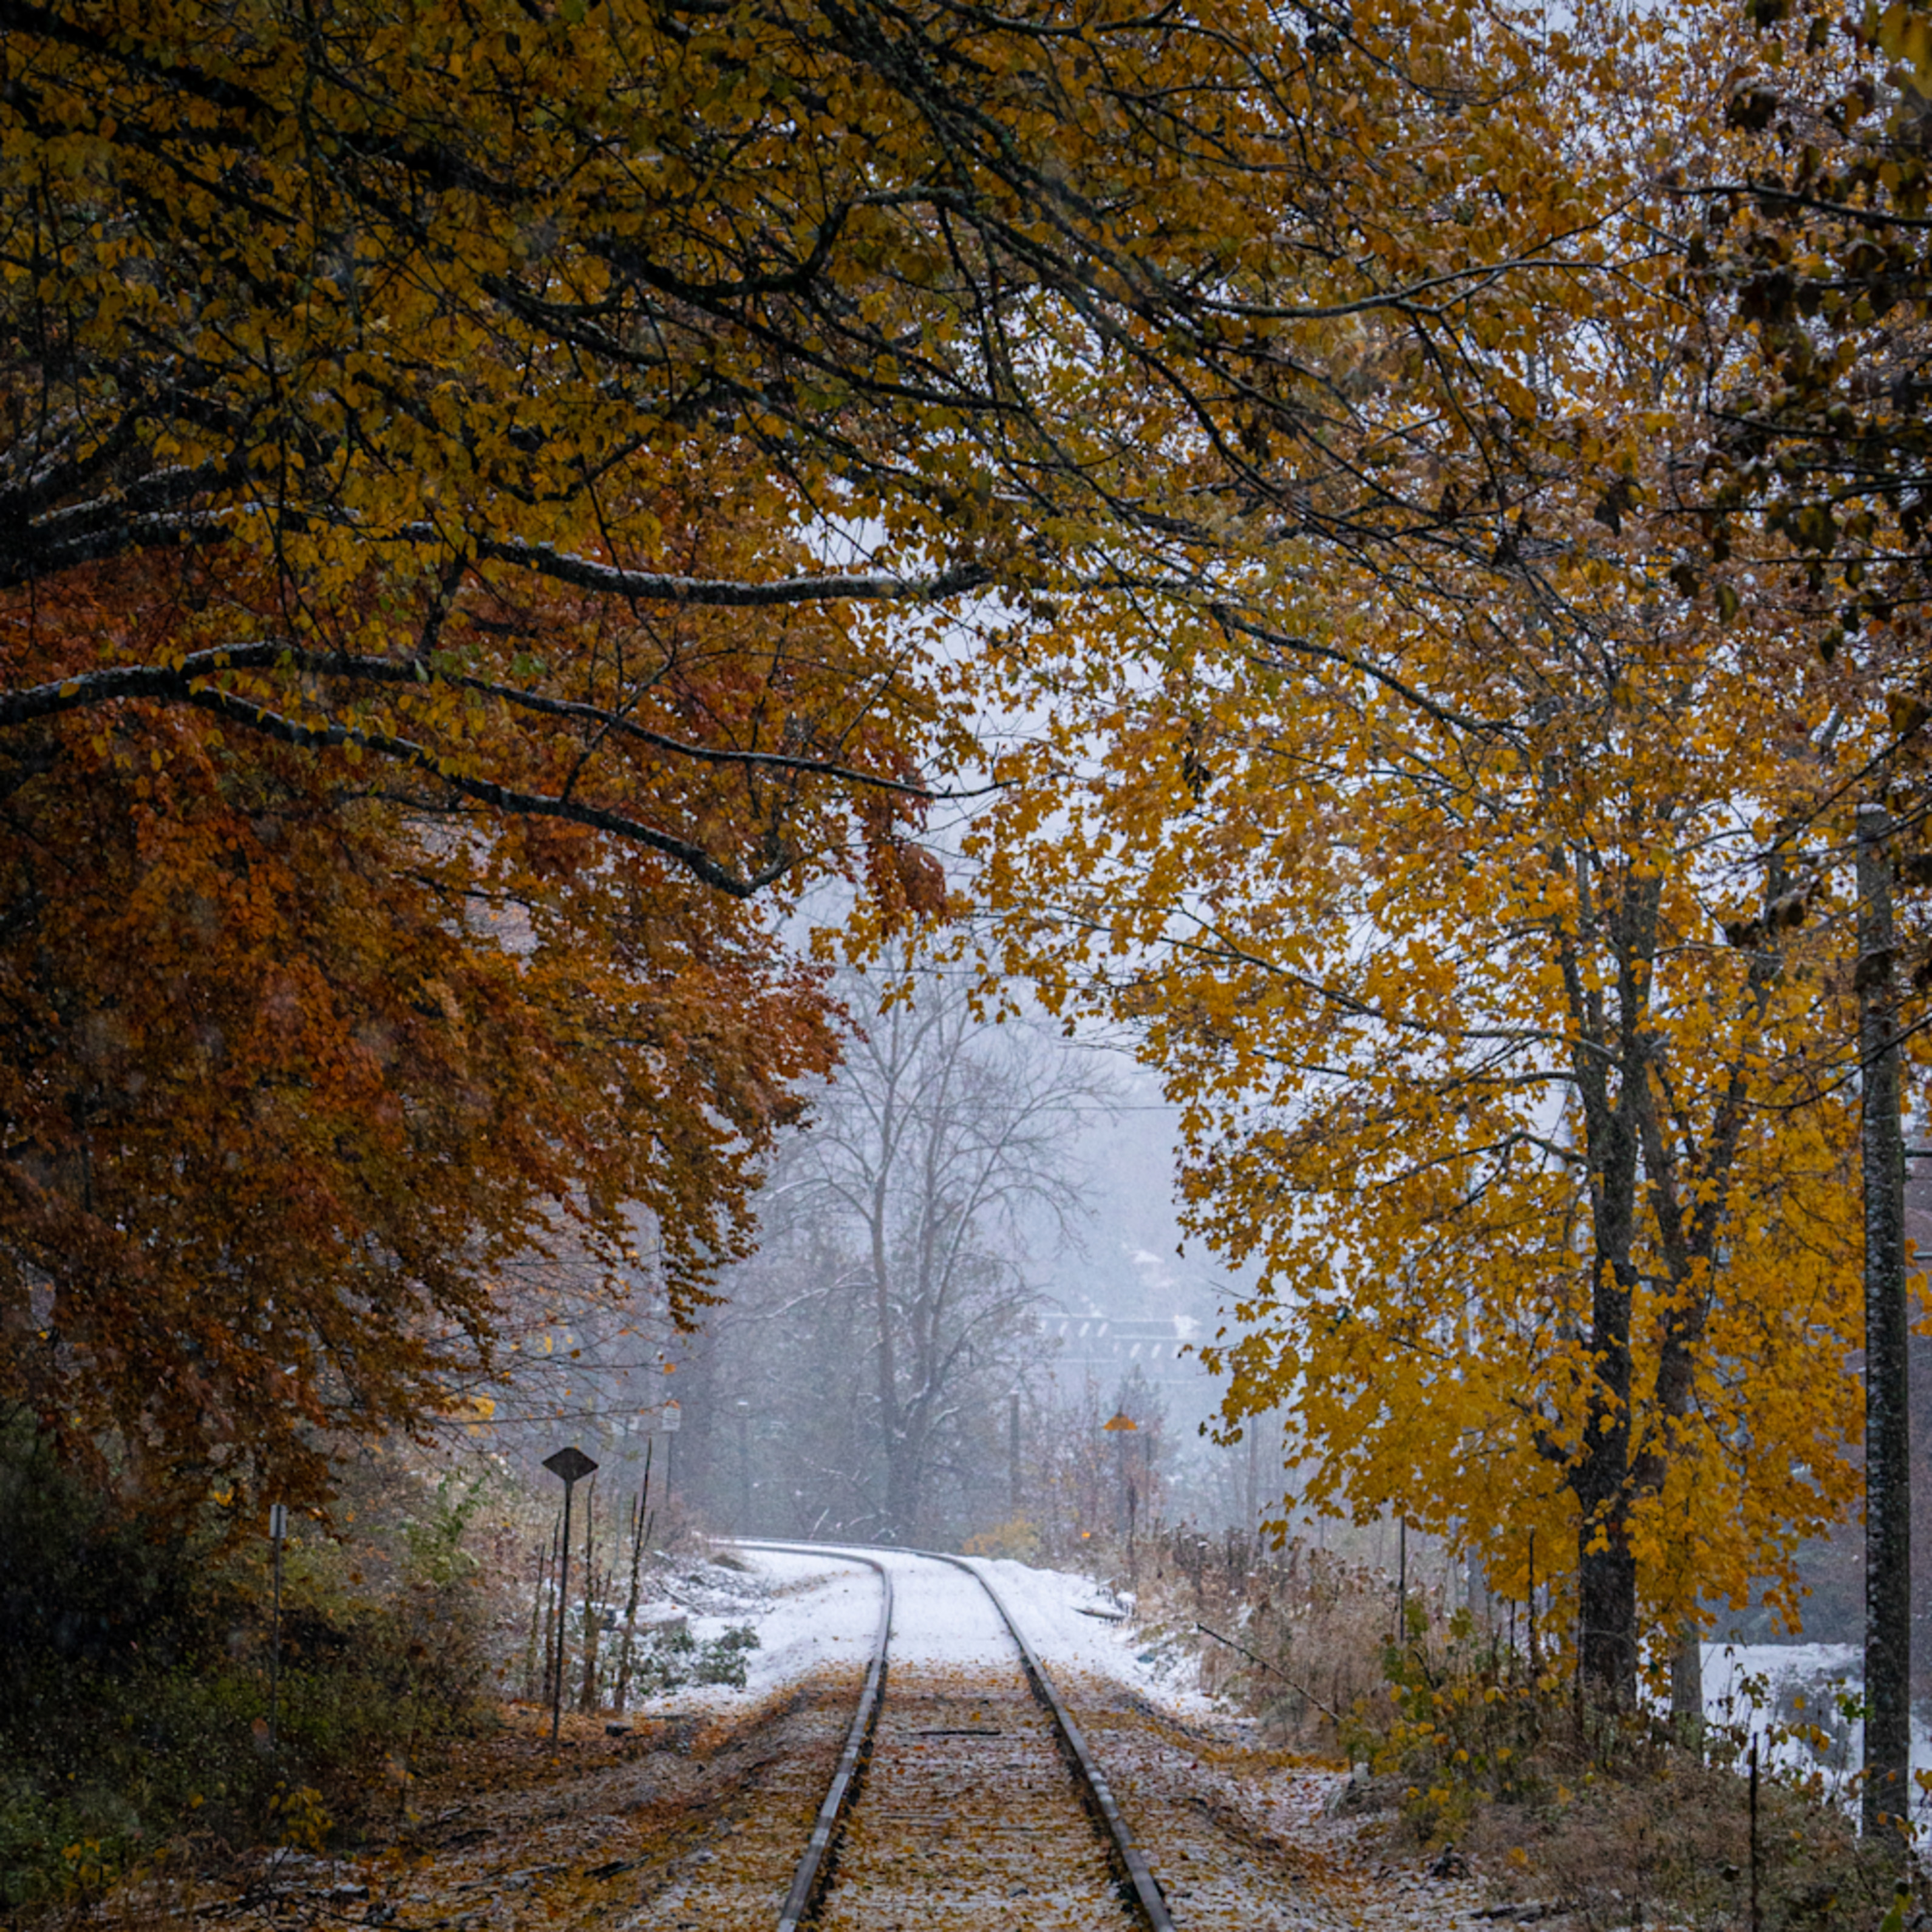 Twp snow and fall railroad 20201113 0002 go1y82